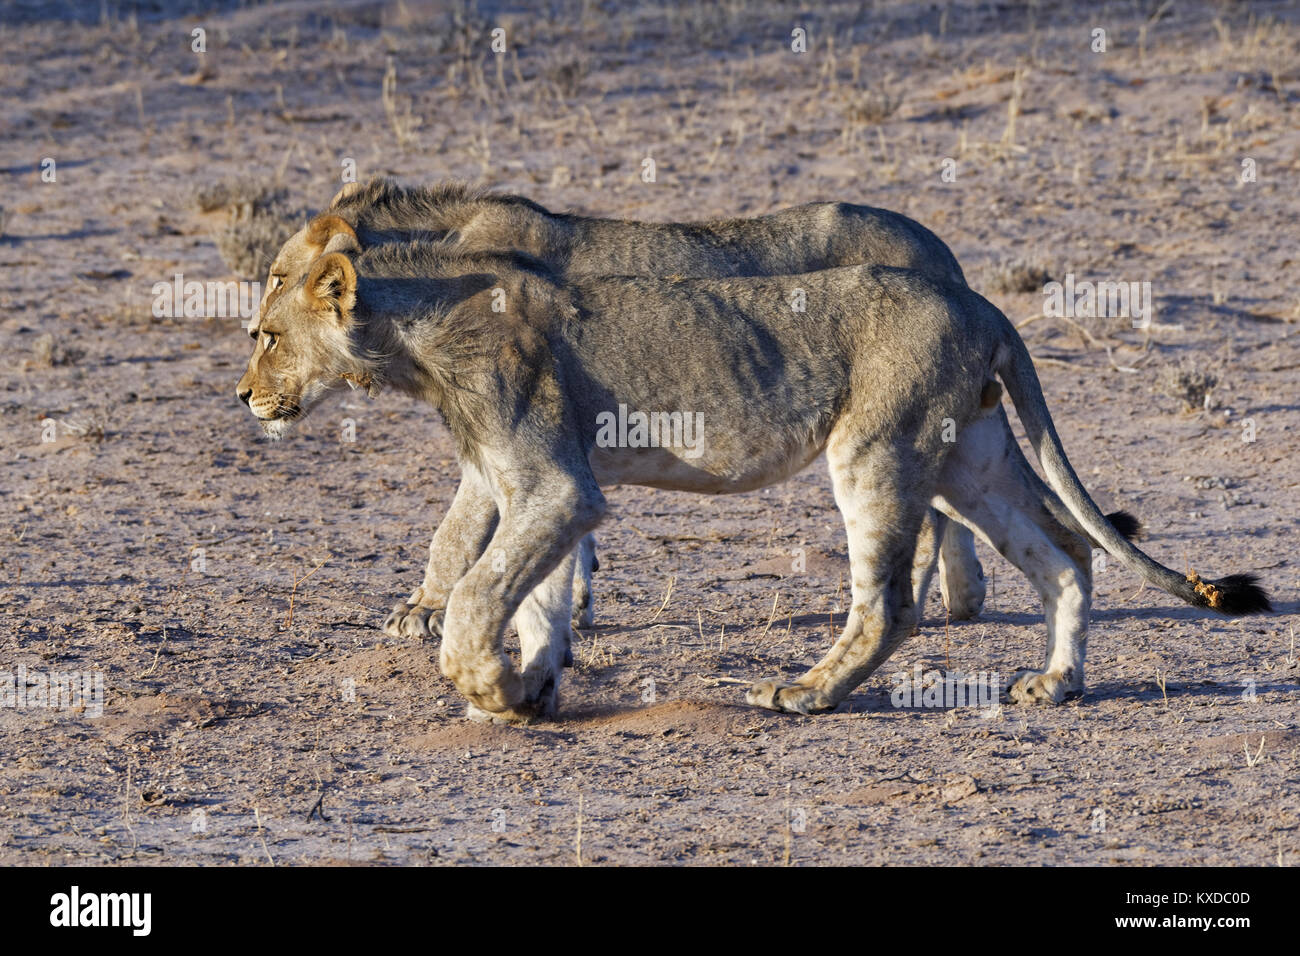 African lions (Panthera leo), two young males walking side by side, Kgalagadi Transfrontier Park, Northern Cape, - Stock Image